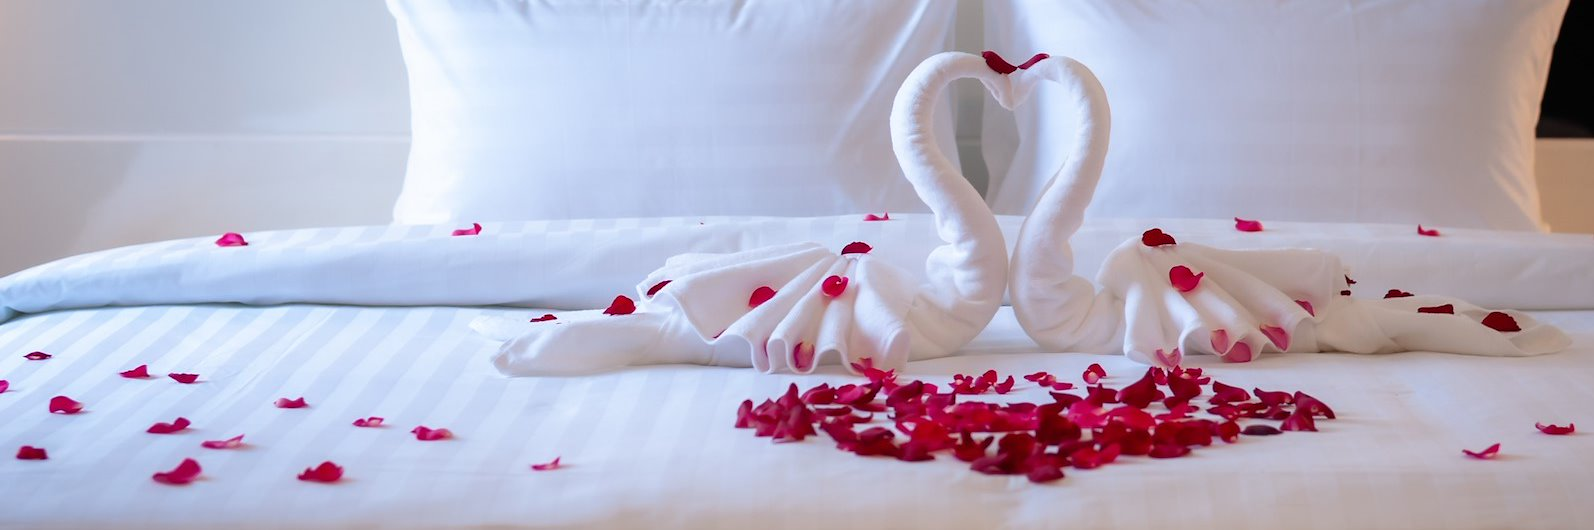 Valentine's Day Special at Avanti Palms Resort in Orlando